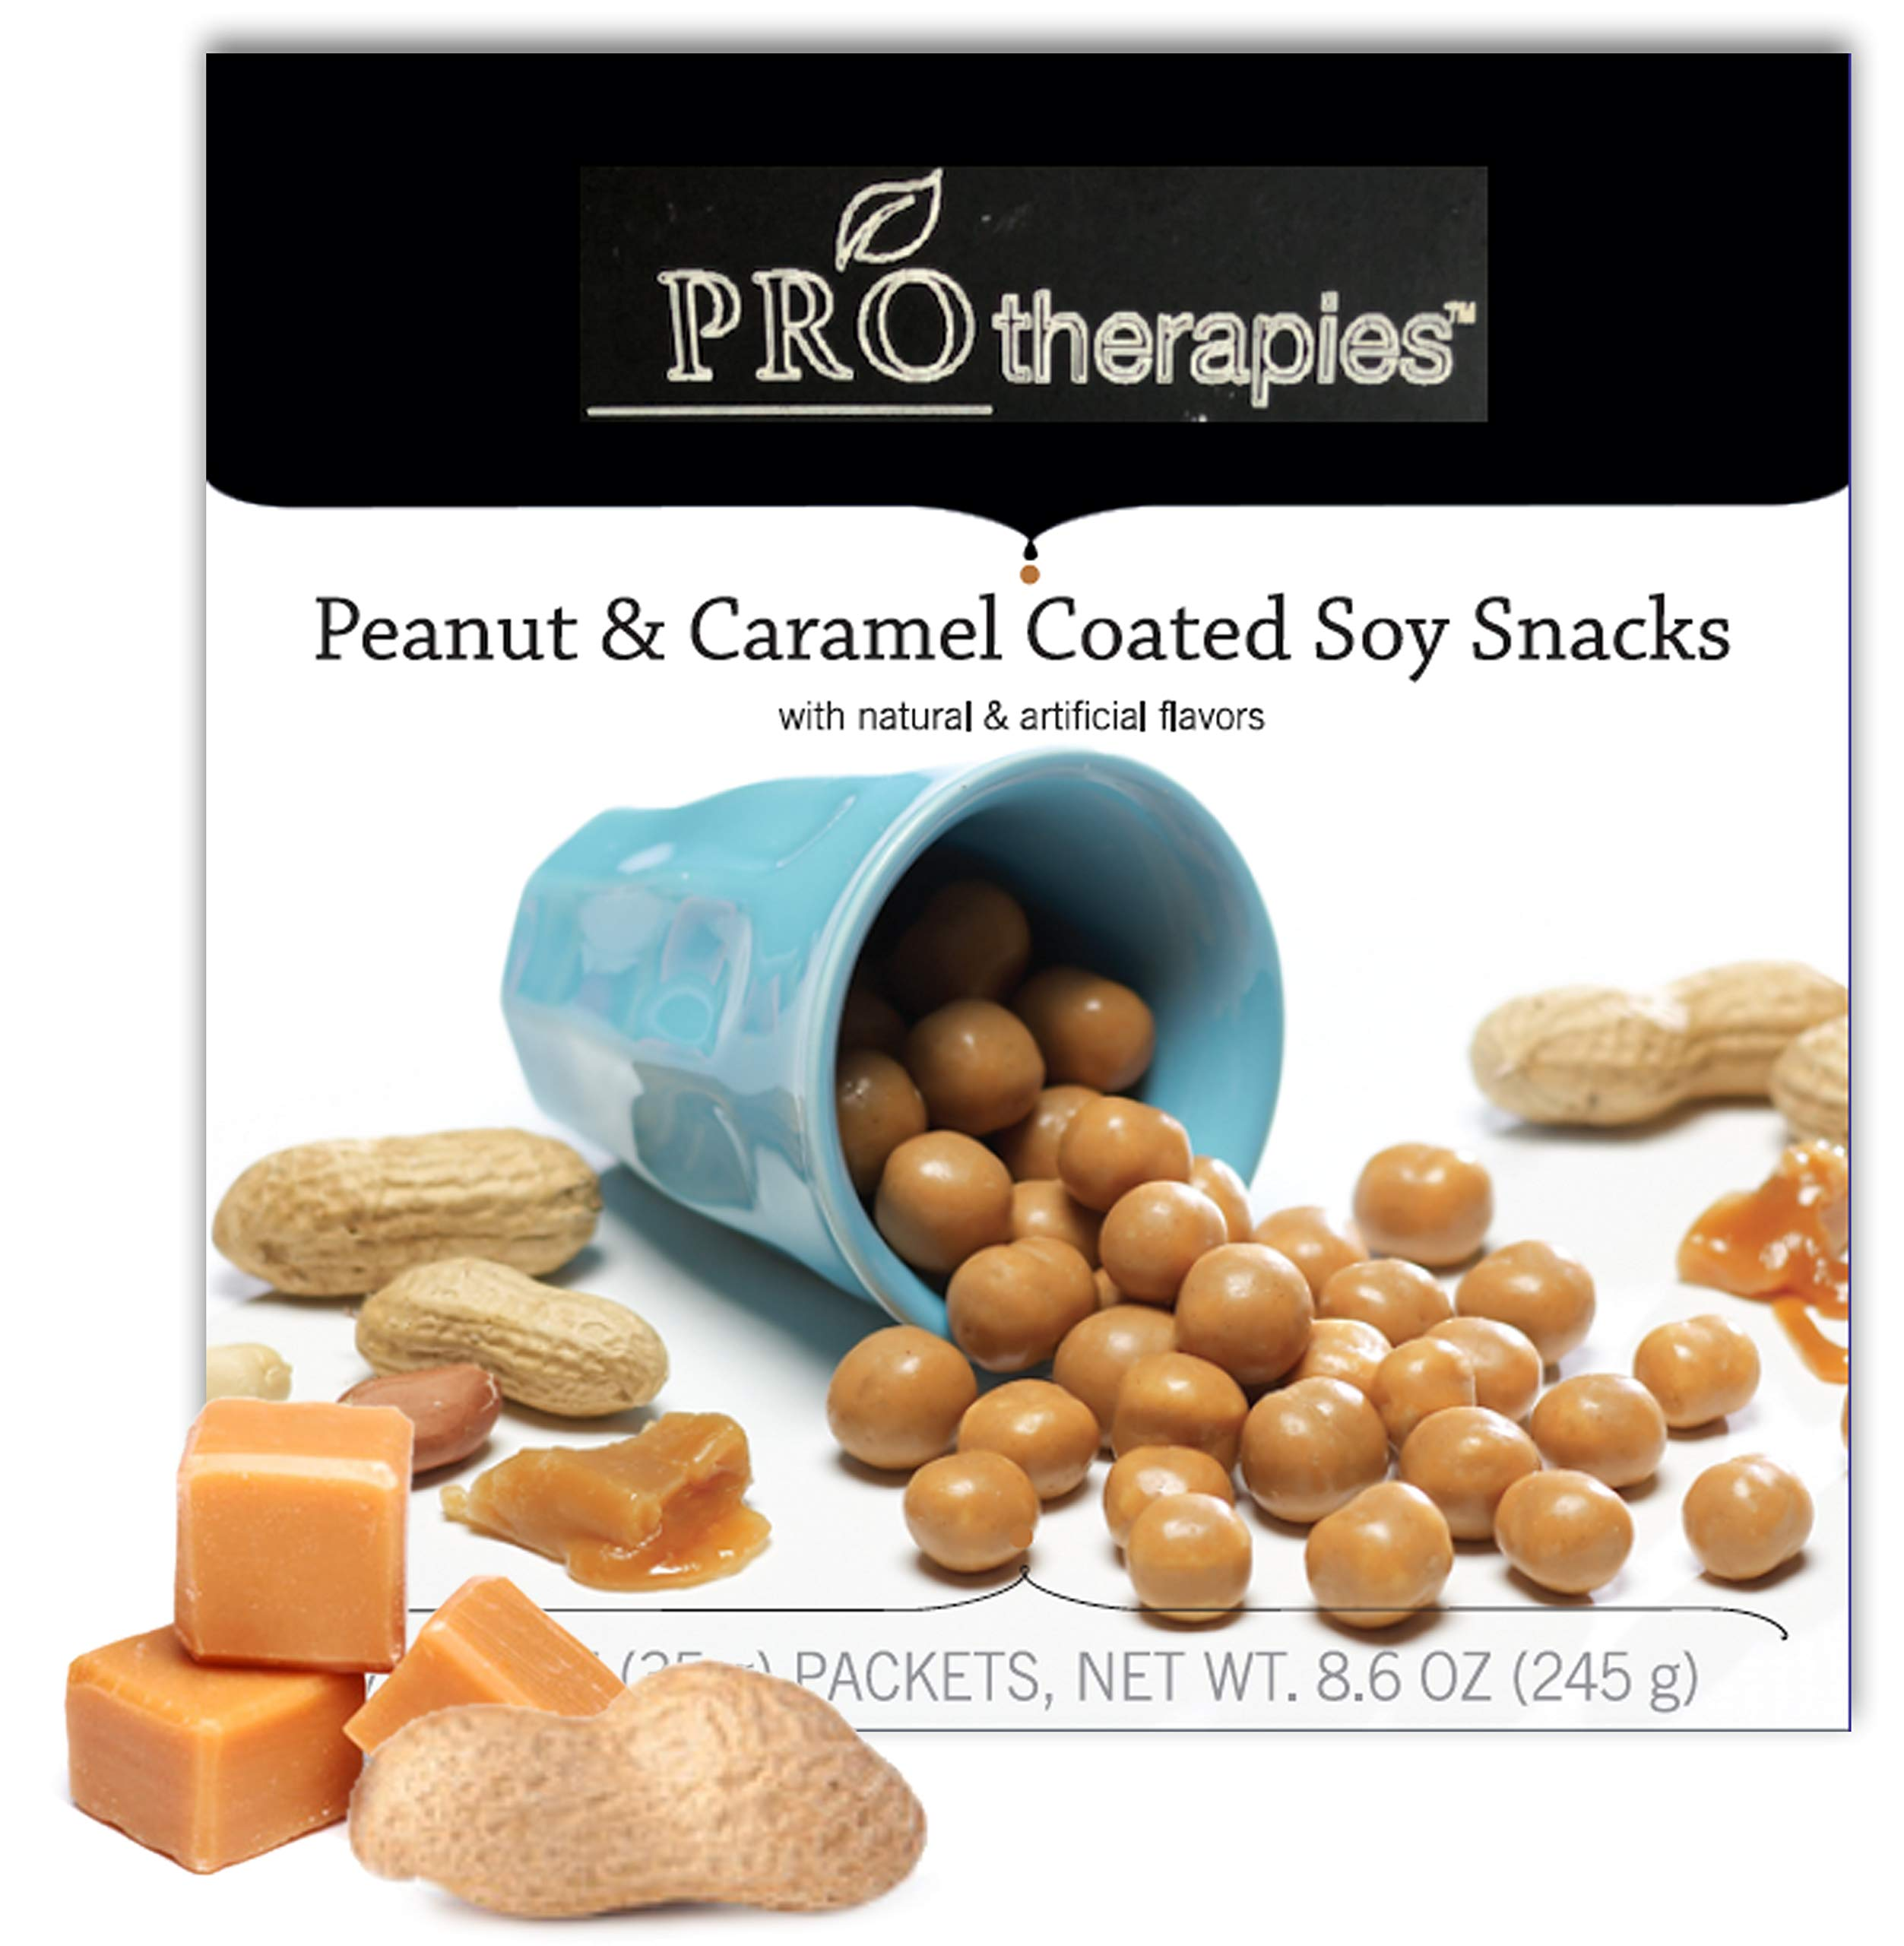 Amazon.com: Caramel and Peanut Covered Soy Snacks - Keto Friendly High Protein Soy Snax (15g Protein) 7 Servings/Pack: Health & Personal Care